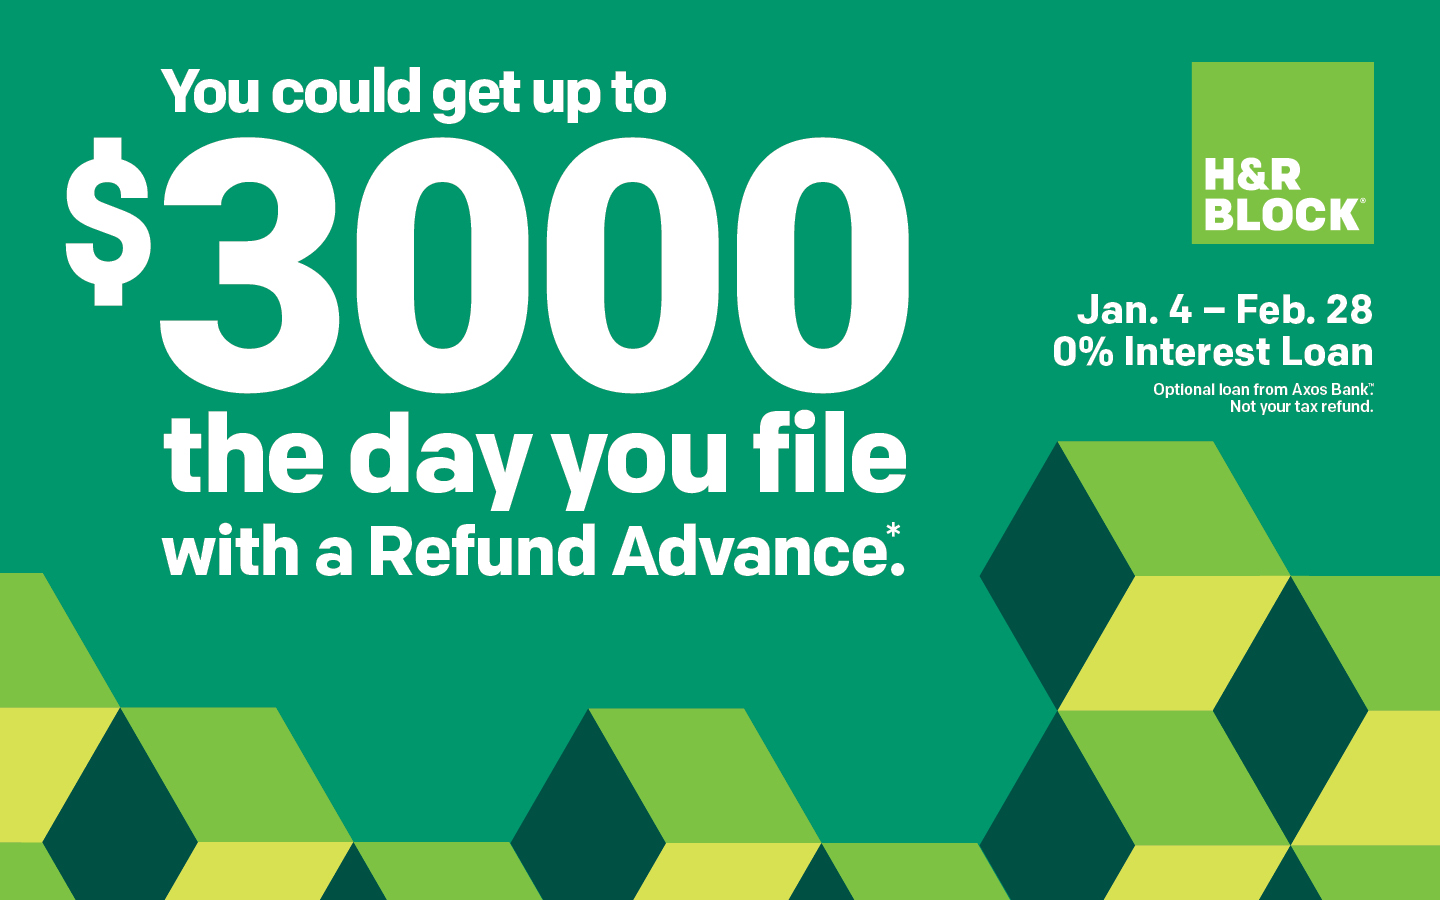 Diy Bank Holiday Offers How To Apply For Refund Advance For 2019 H R Block Newsroom